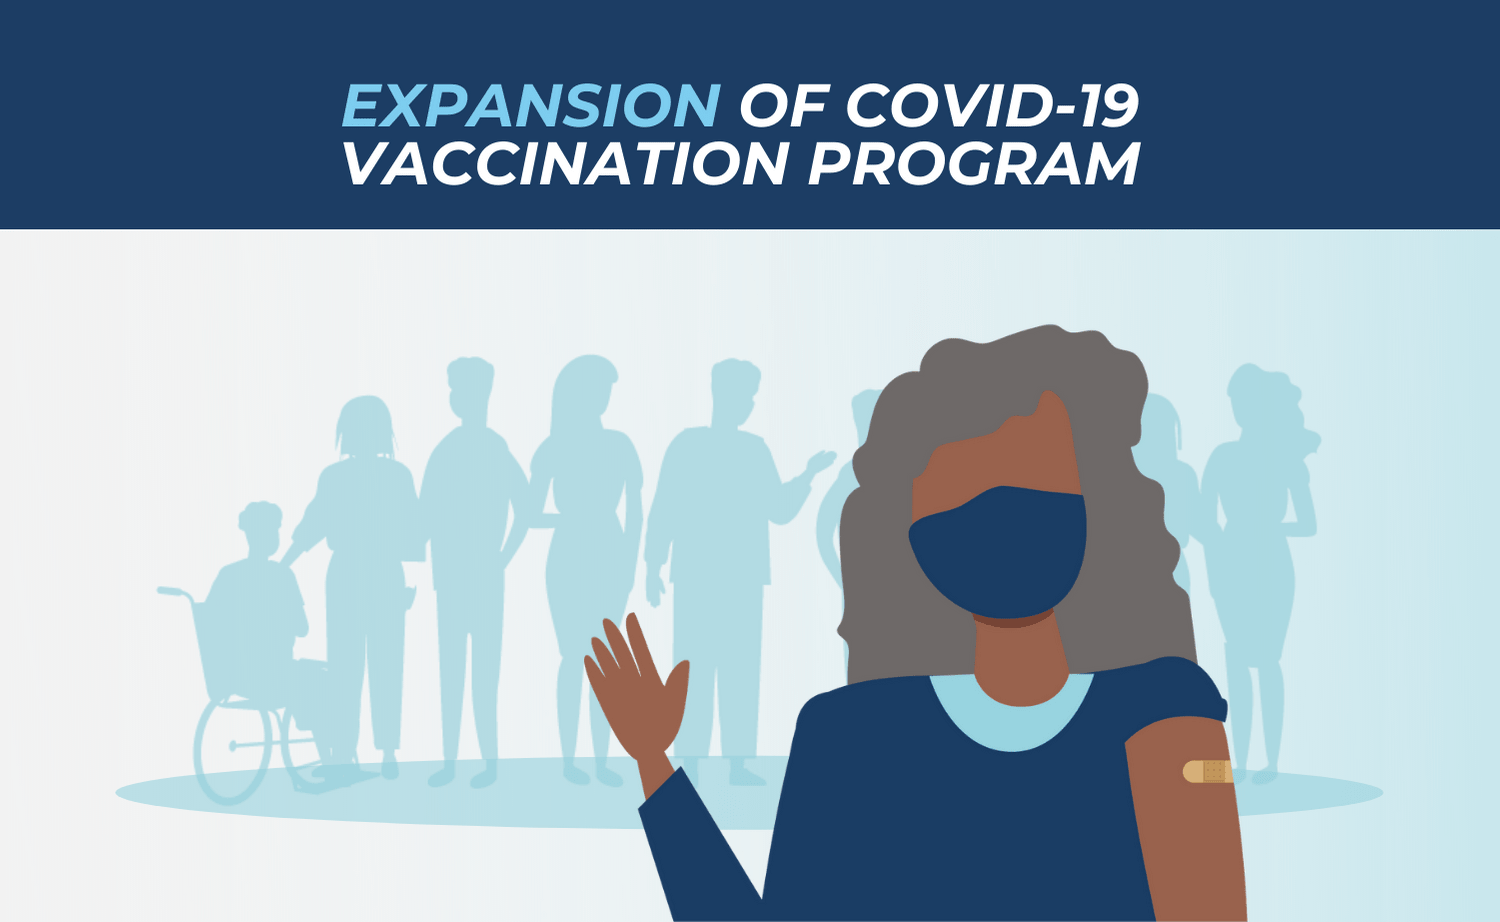 Governor Carney Announces Updates to COVID-19 Vaccination Program